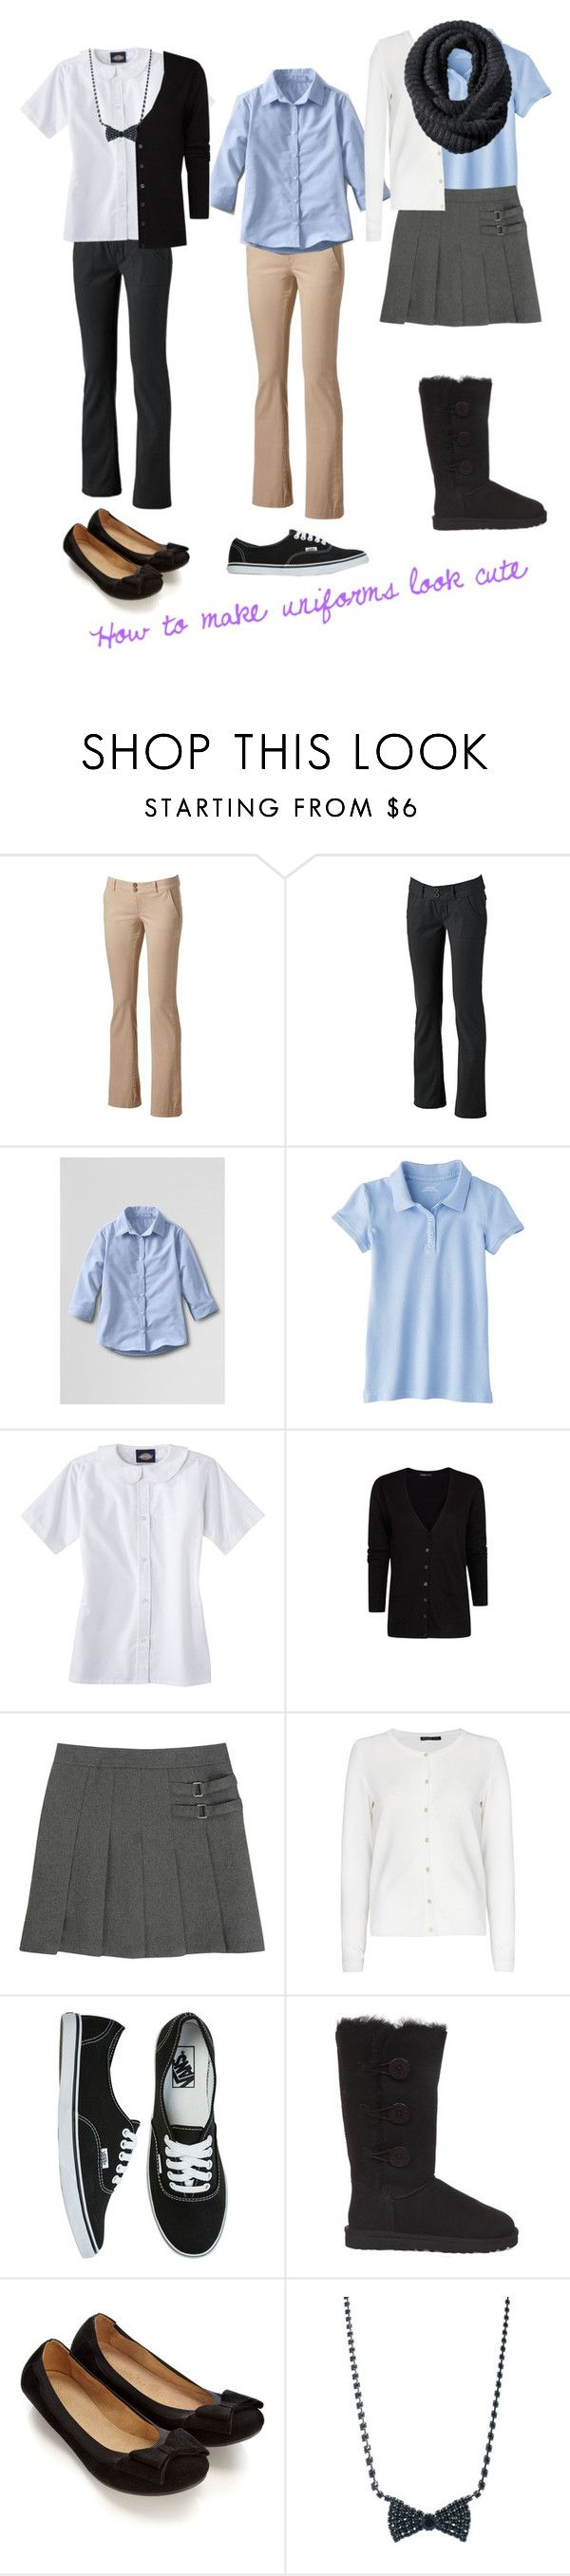 """Helpful tips--How to make uniforms look cute"" by tinydancer1175 ❤ liked on Polyvore featuring UNIONBAY, Lands' End, Dickies, MANGO, French Toast, Vans, UGG Australia, Accessorize, Krystal and Merona"